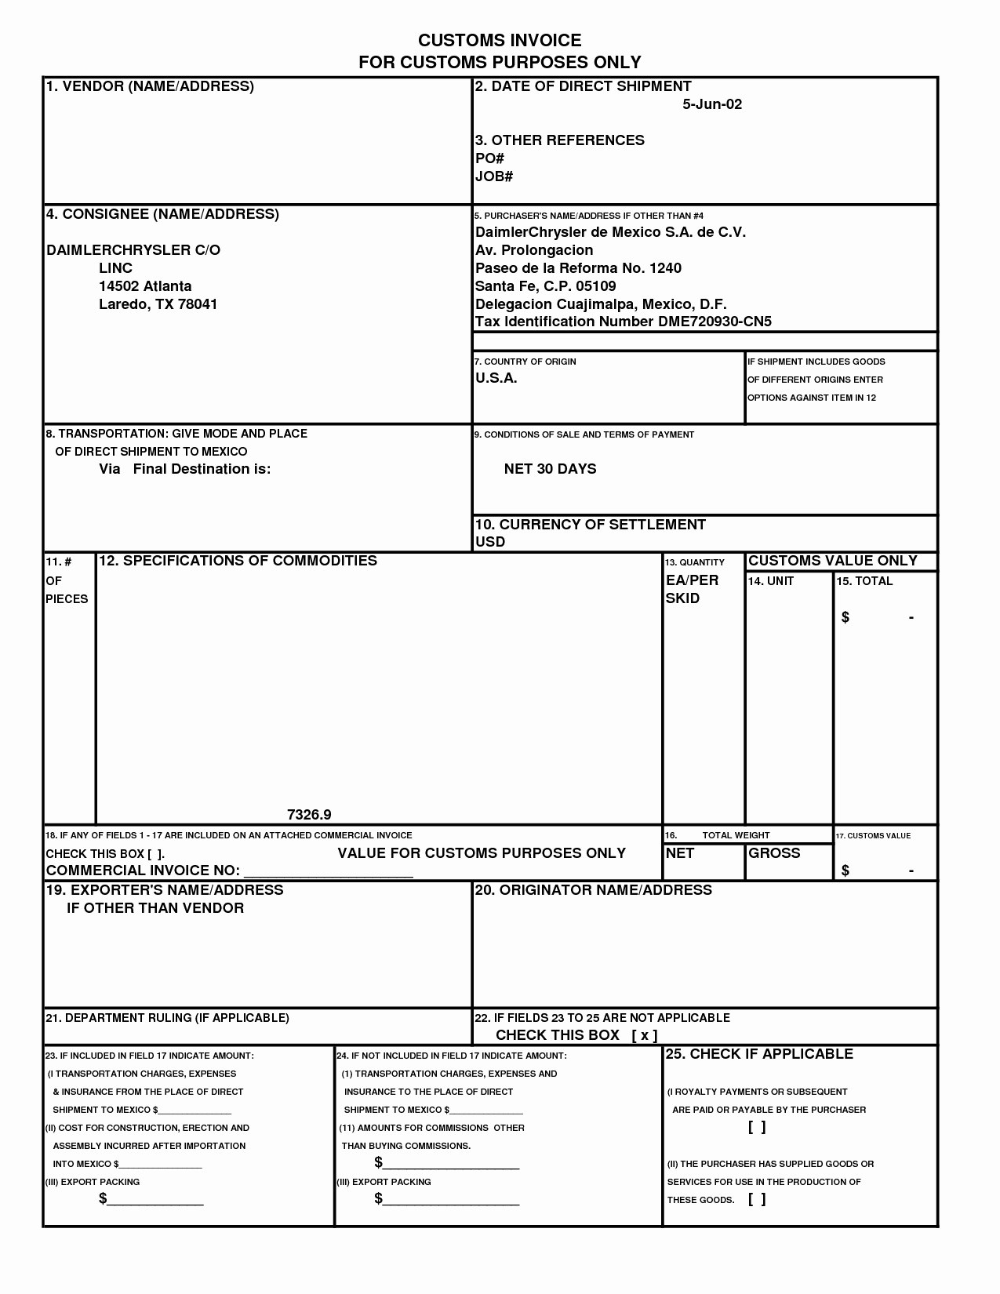 Customs Commercial Invoice Template Amandaeca Within